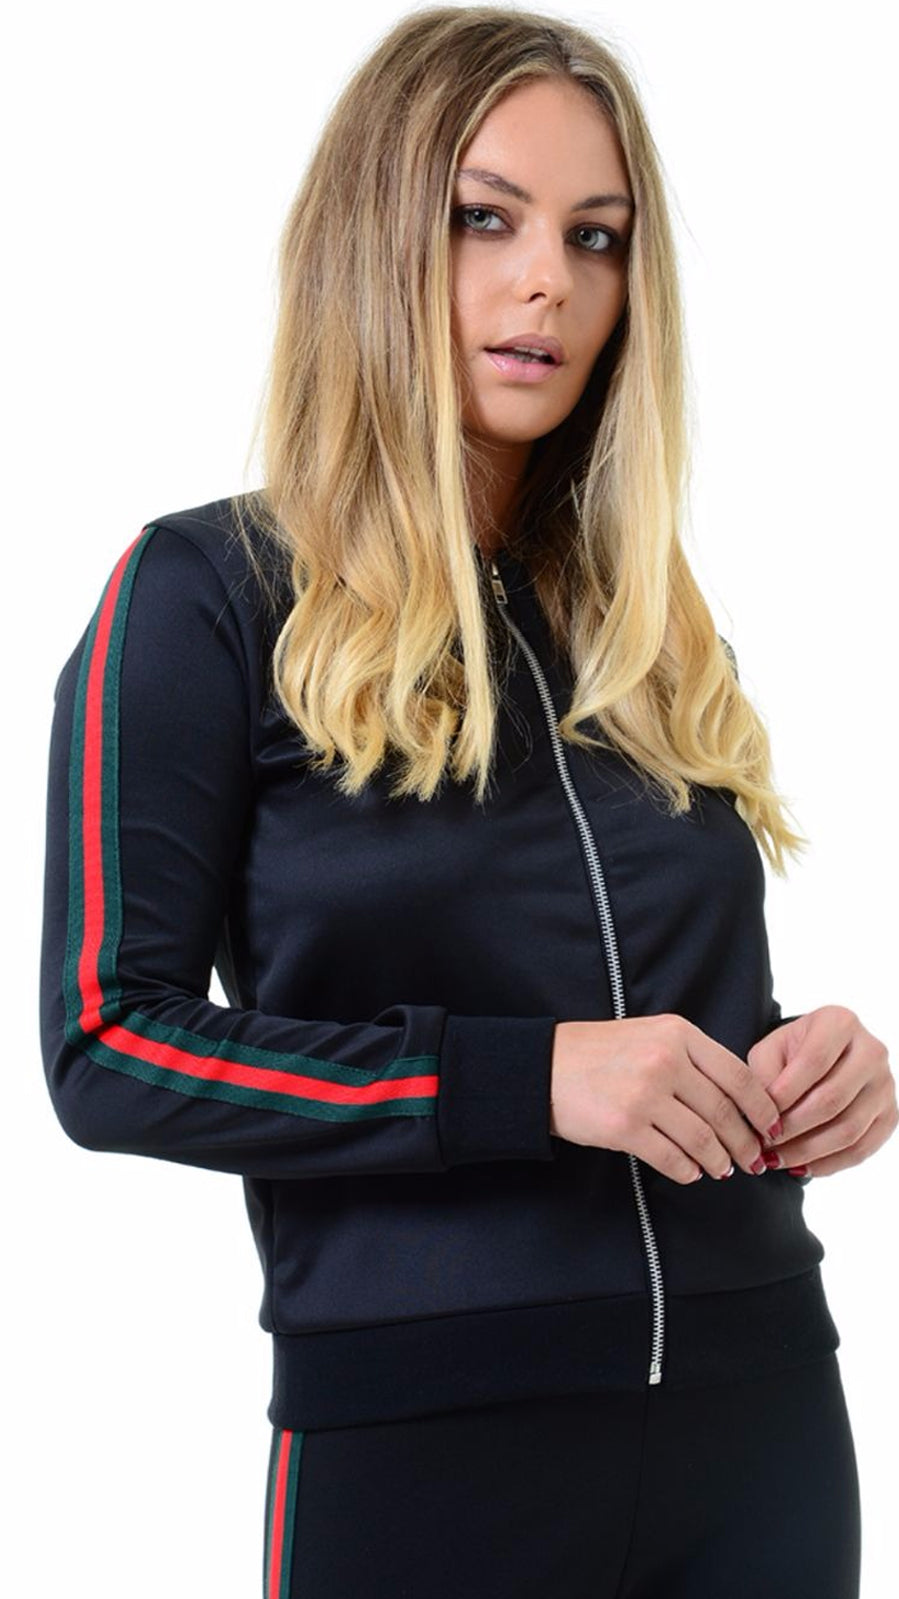 LUCY BLACK BOMBER JACKET WITH SPORT STRIPE DETAIL.